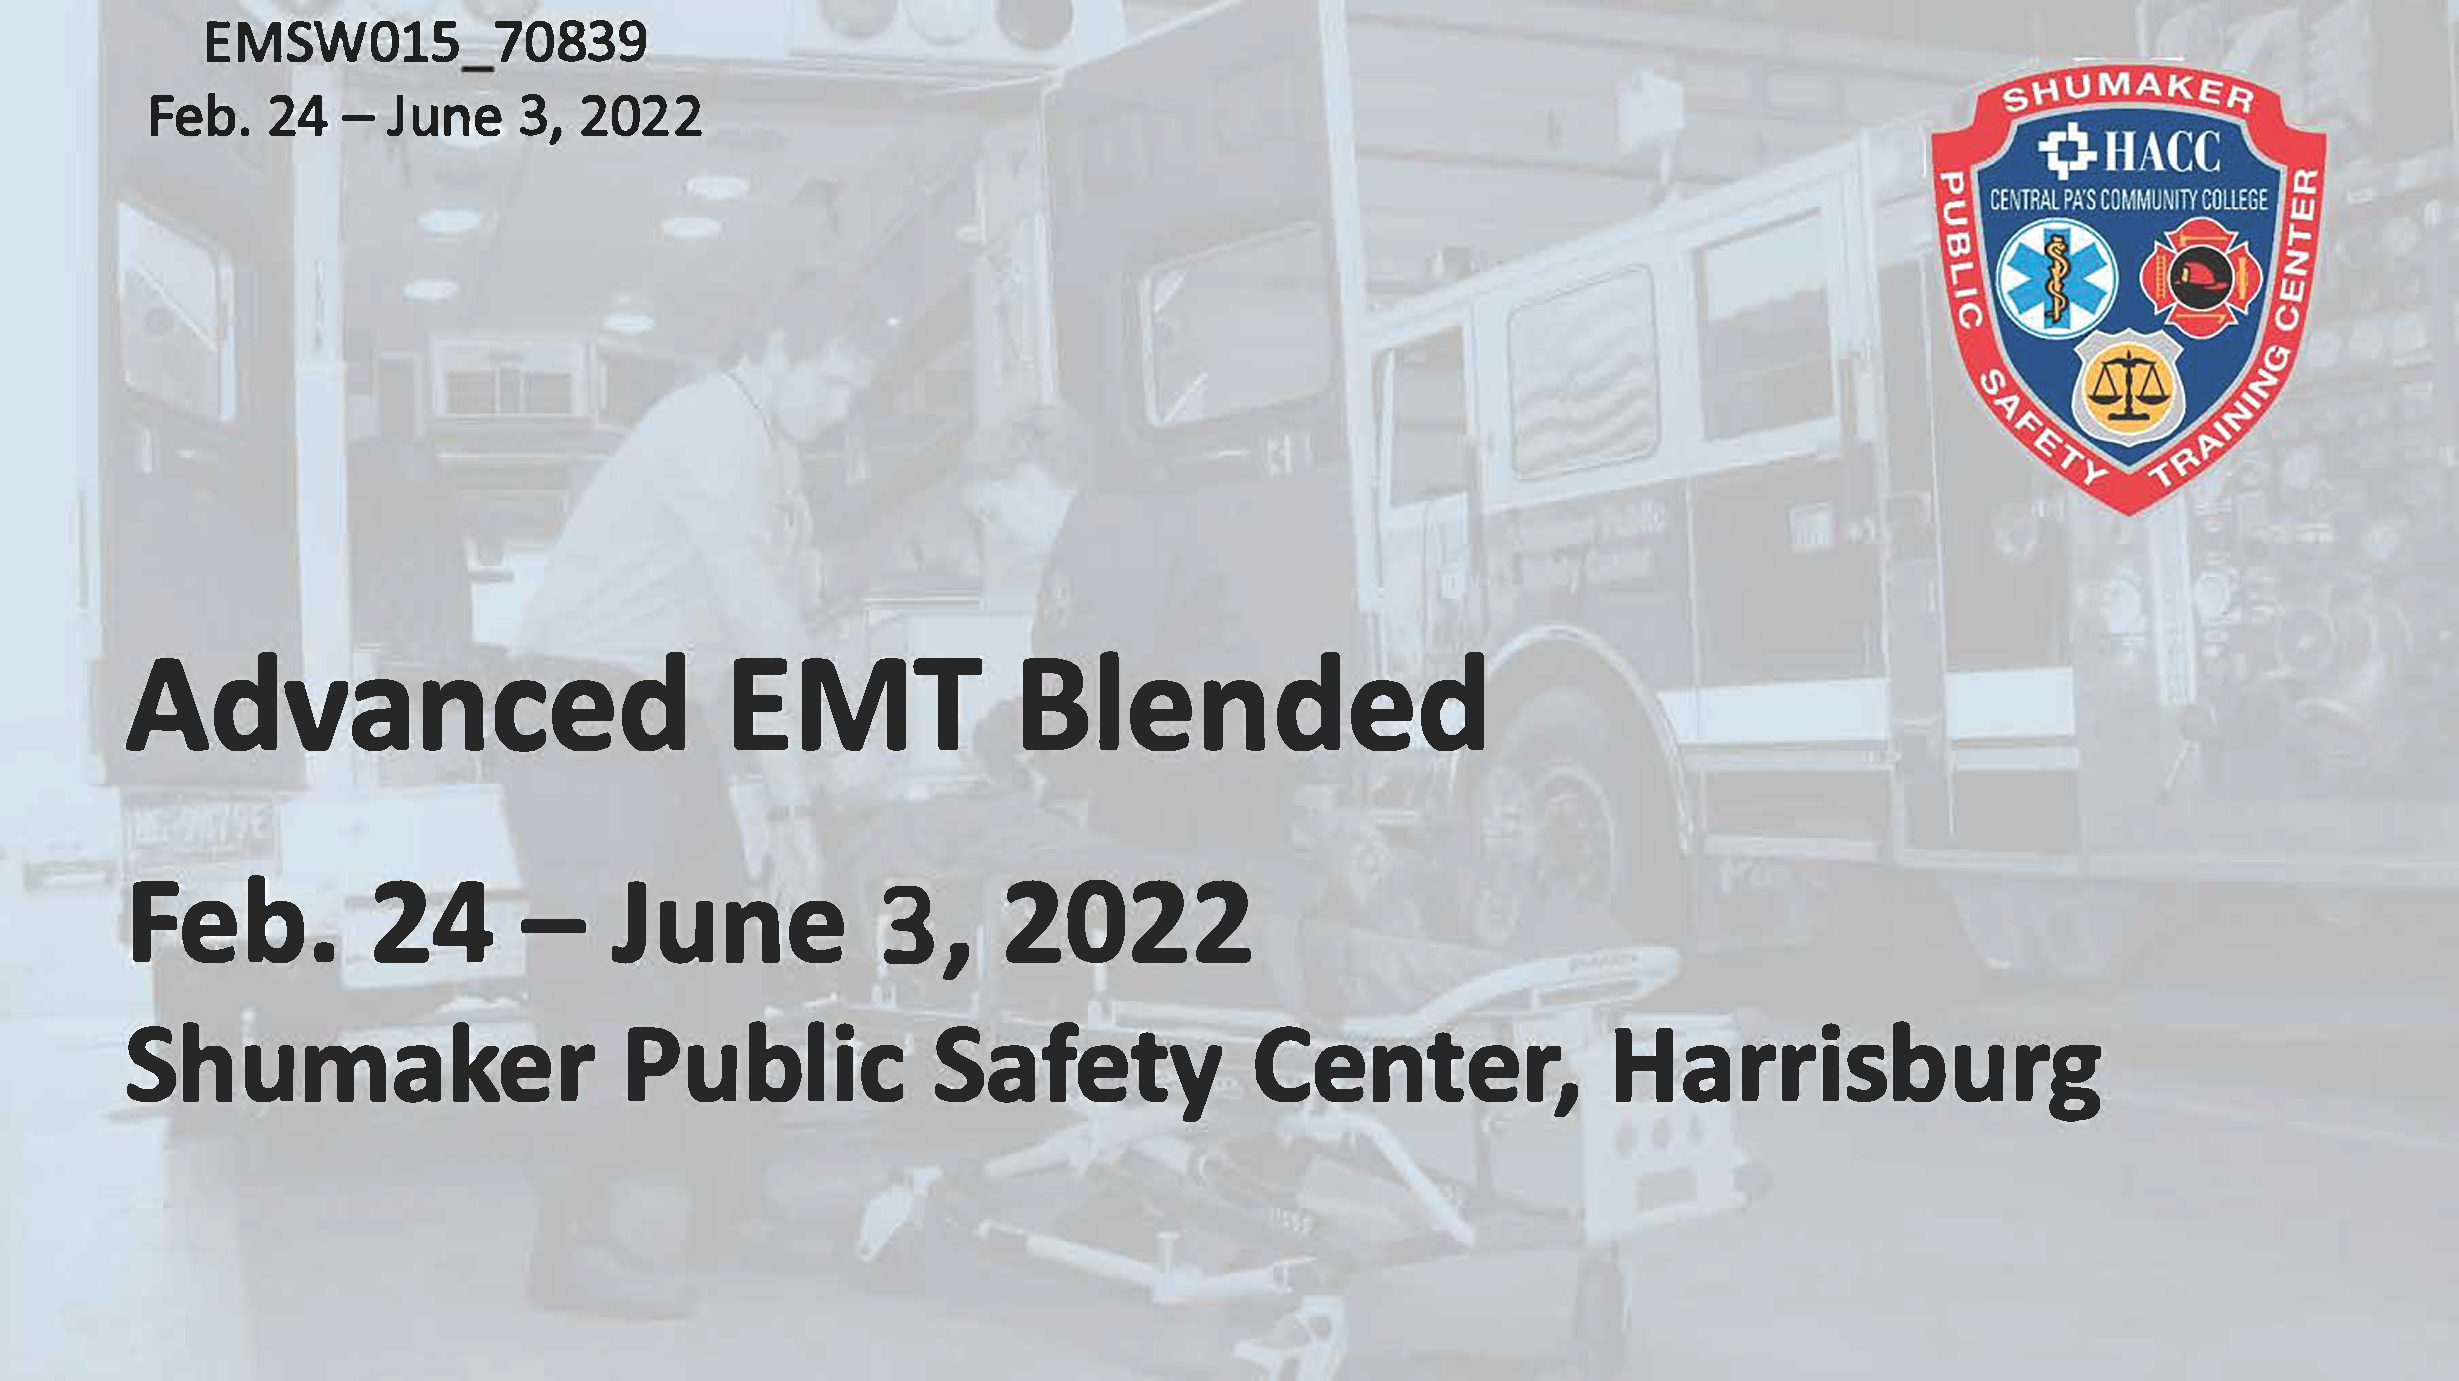 AEMT Blended Thursday (EMSW015_CRN70839) Dauphin County